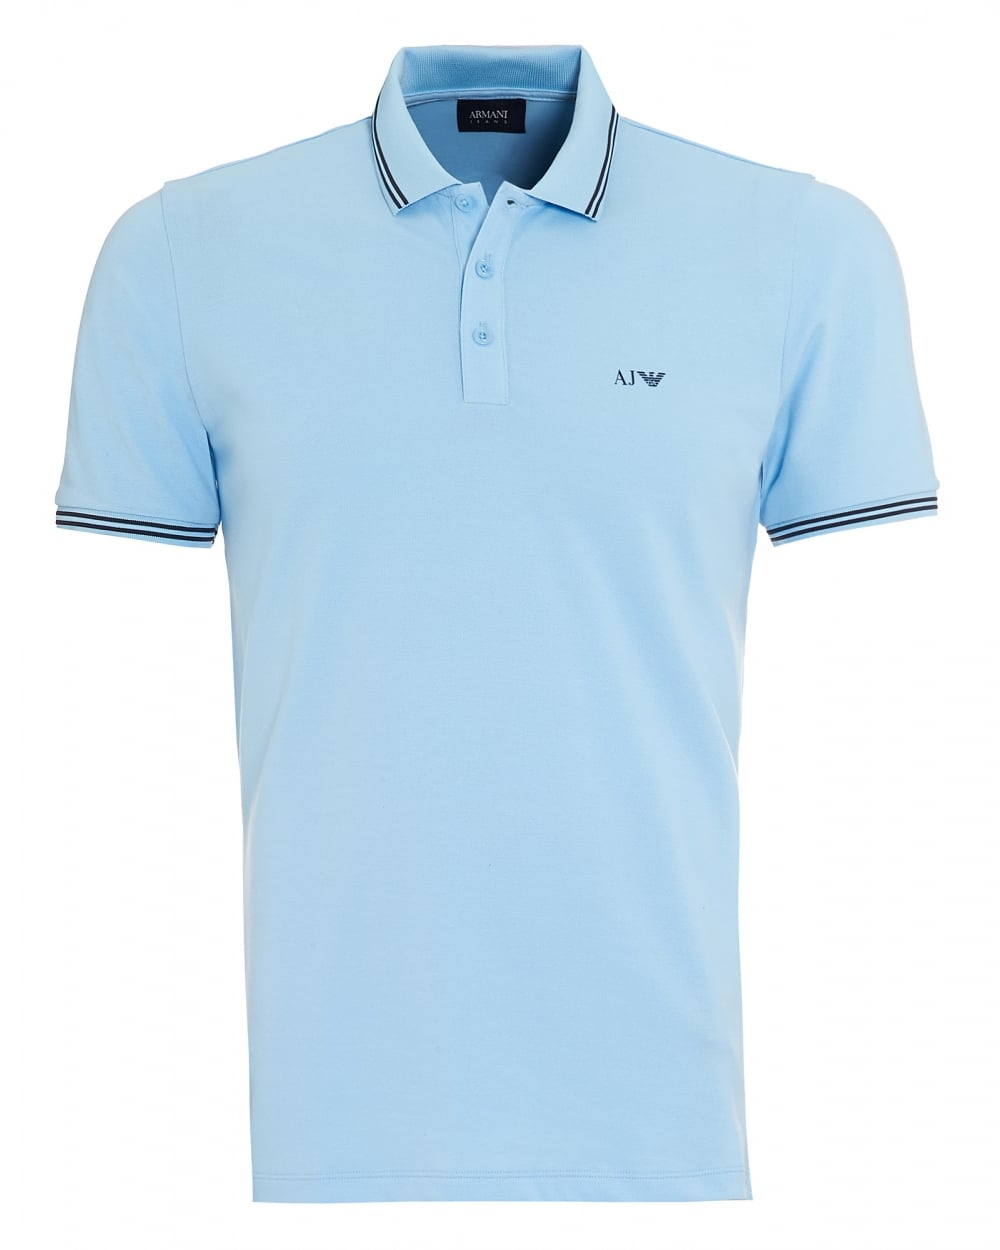 Armani jeans mens sky blue tipped polo shirt for Polo shirt and jeans